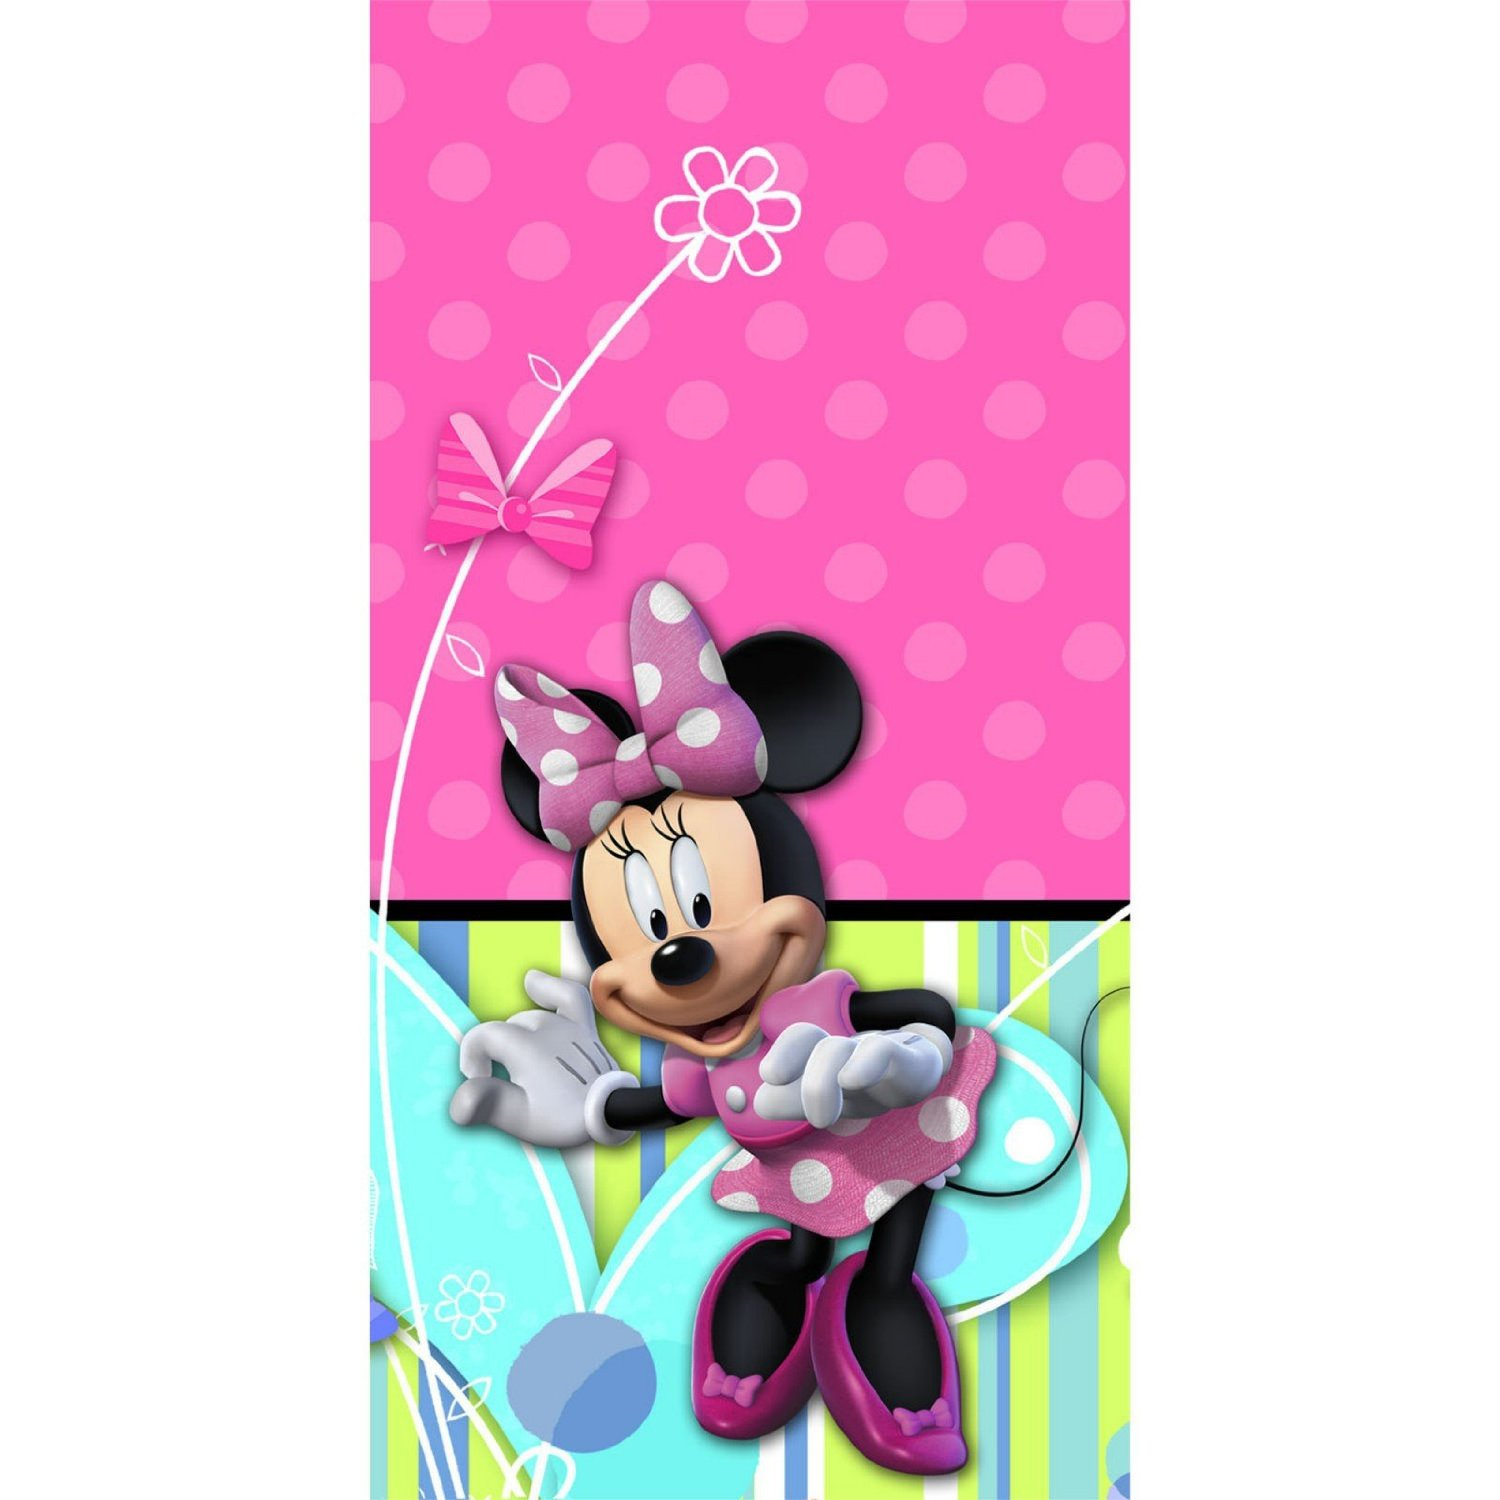 minnie mouse images free clipart best. Black Bedroom Furniture Sets. Home Design Ideas